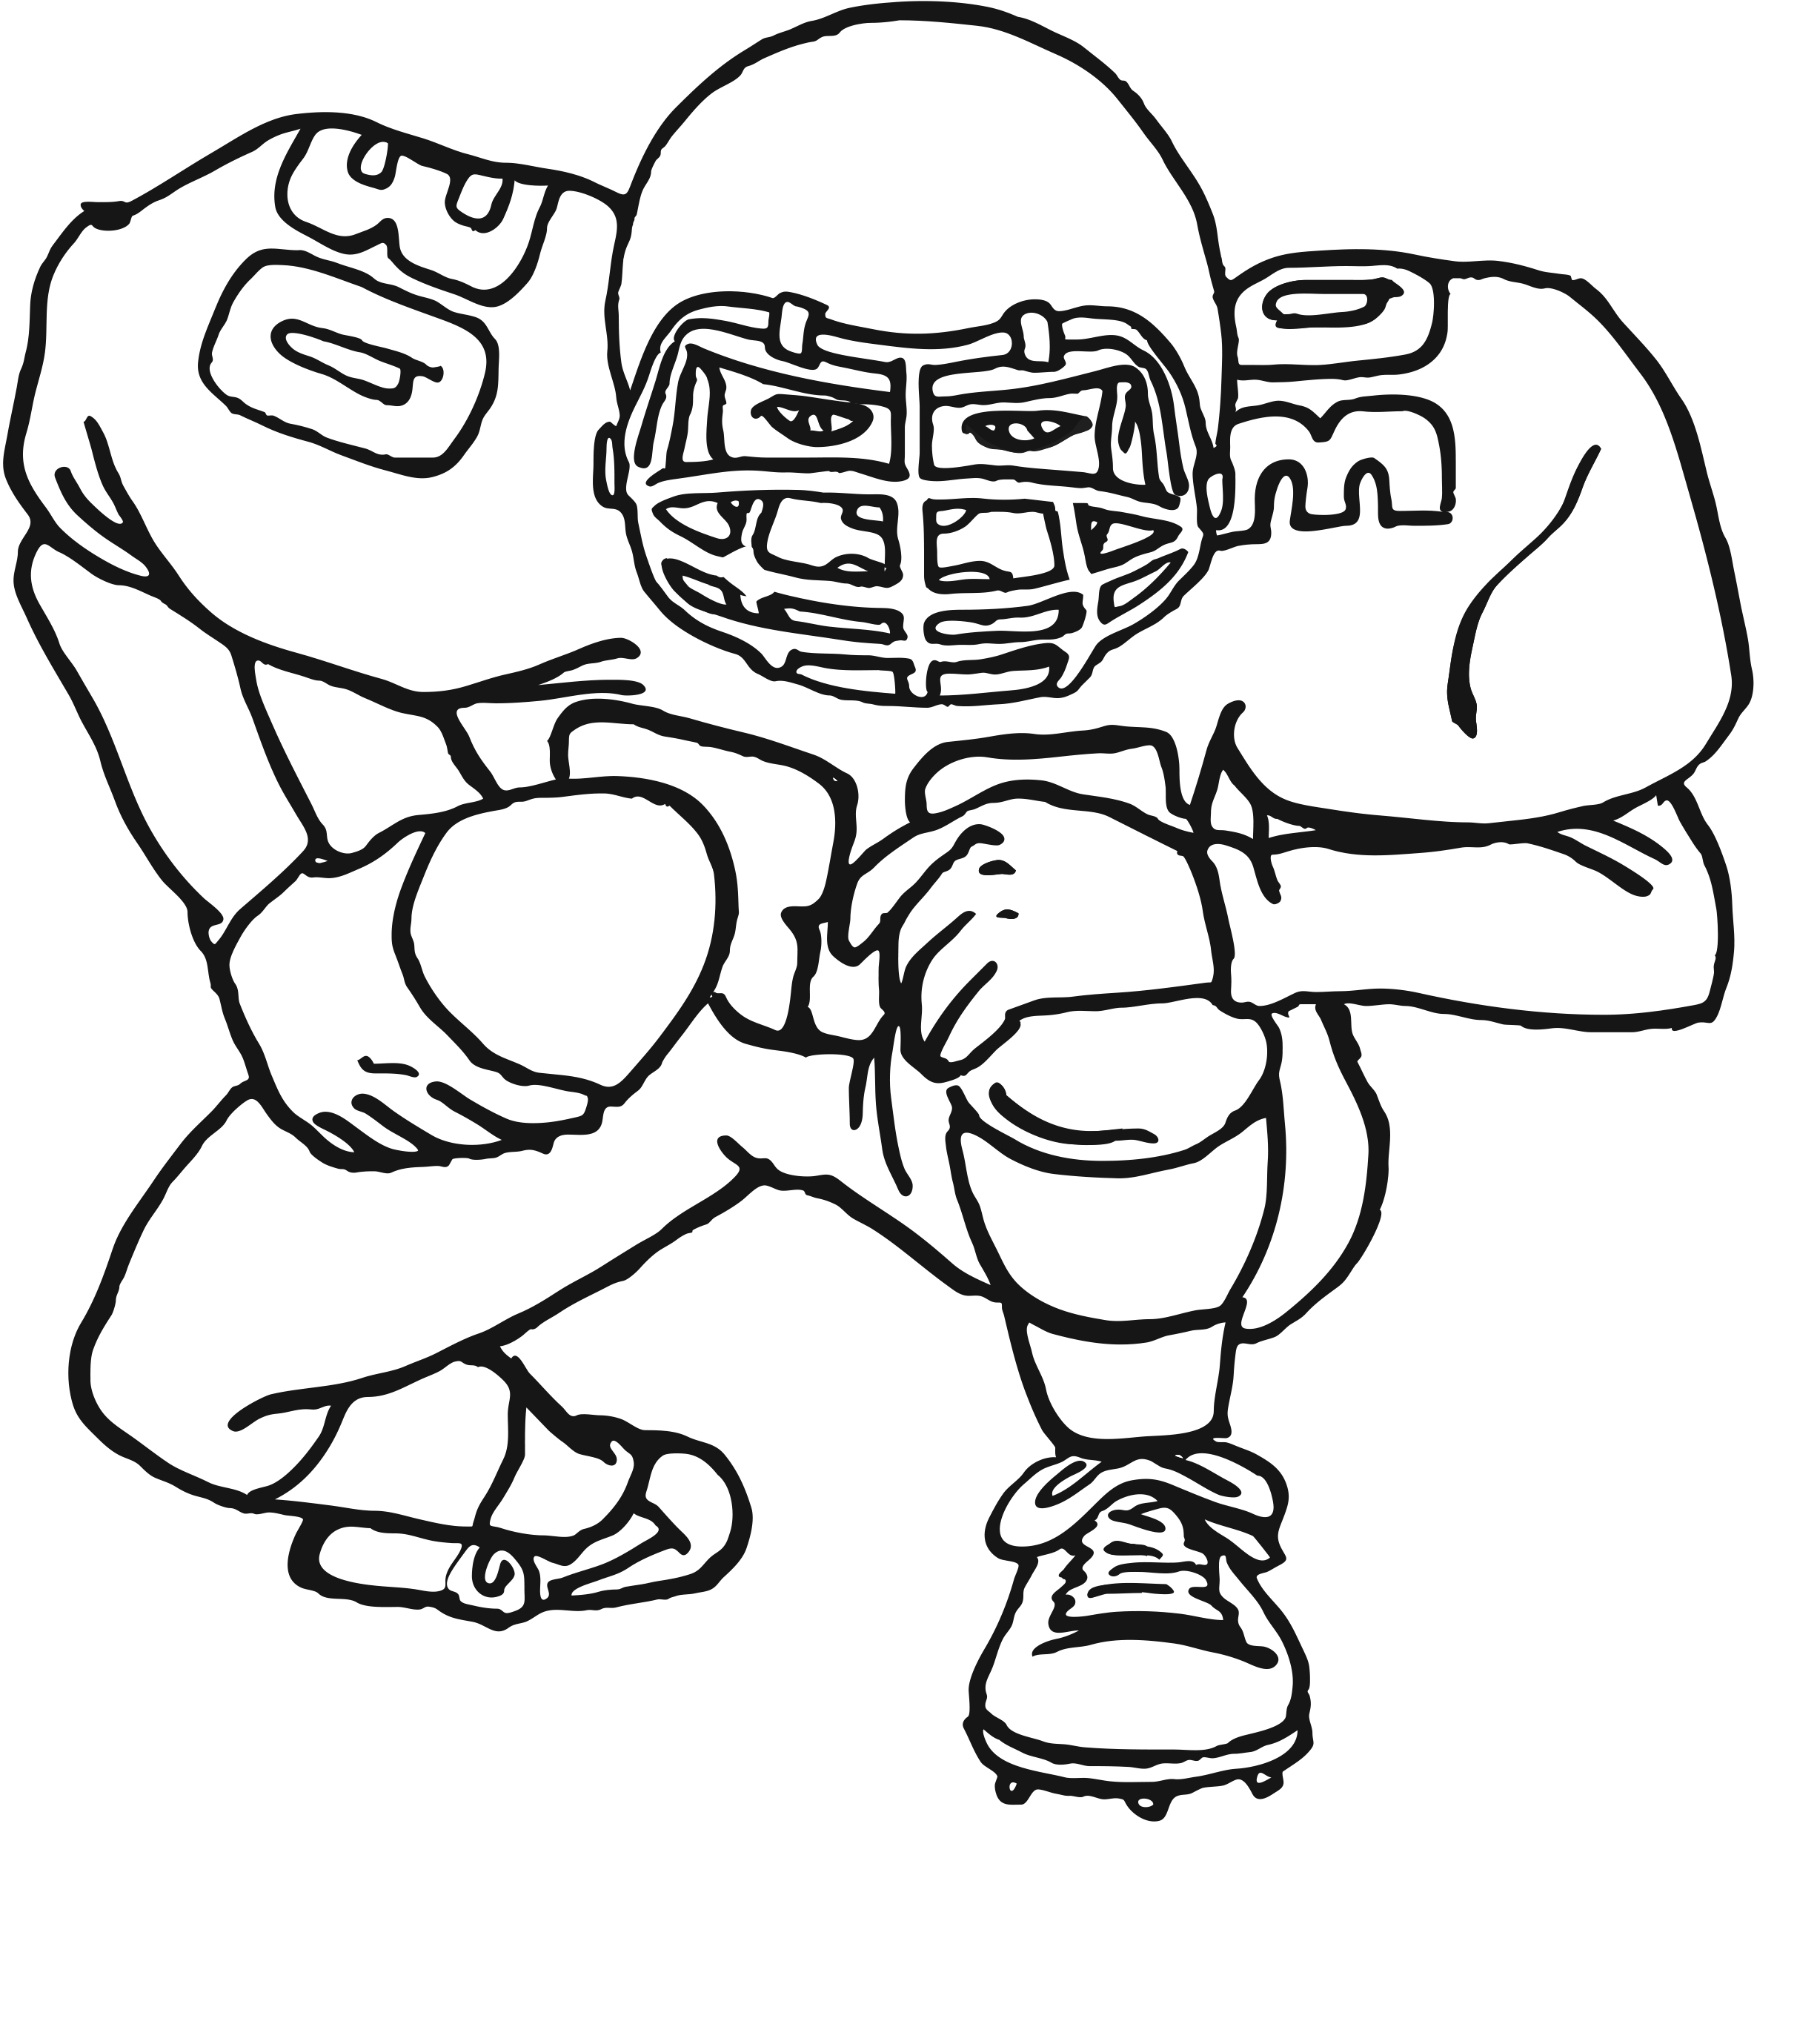 free printable football pictures football free printable coloring pages free football pictures printable